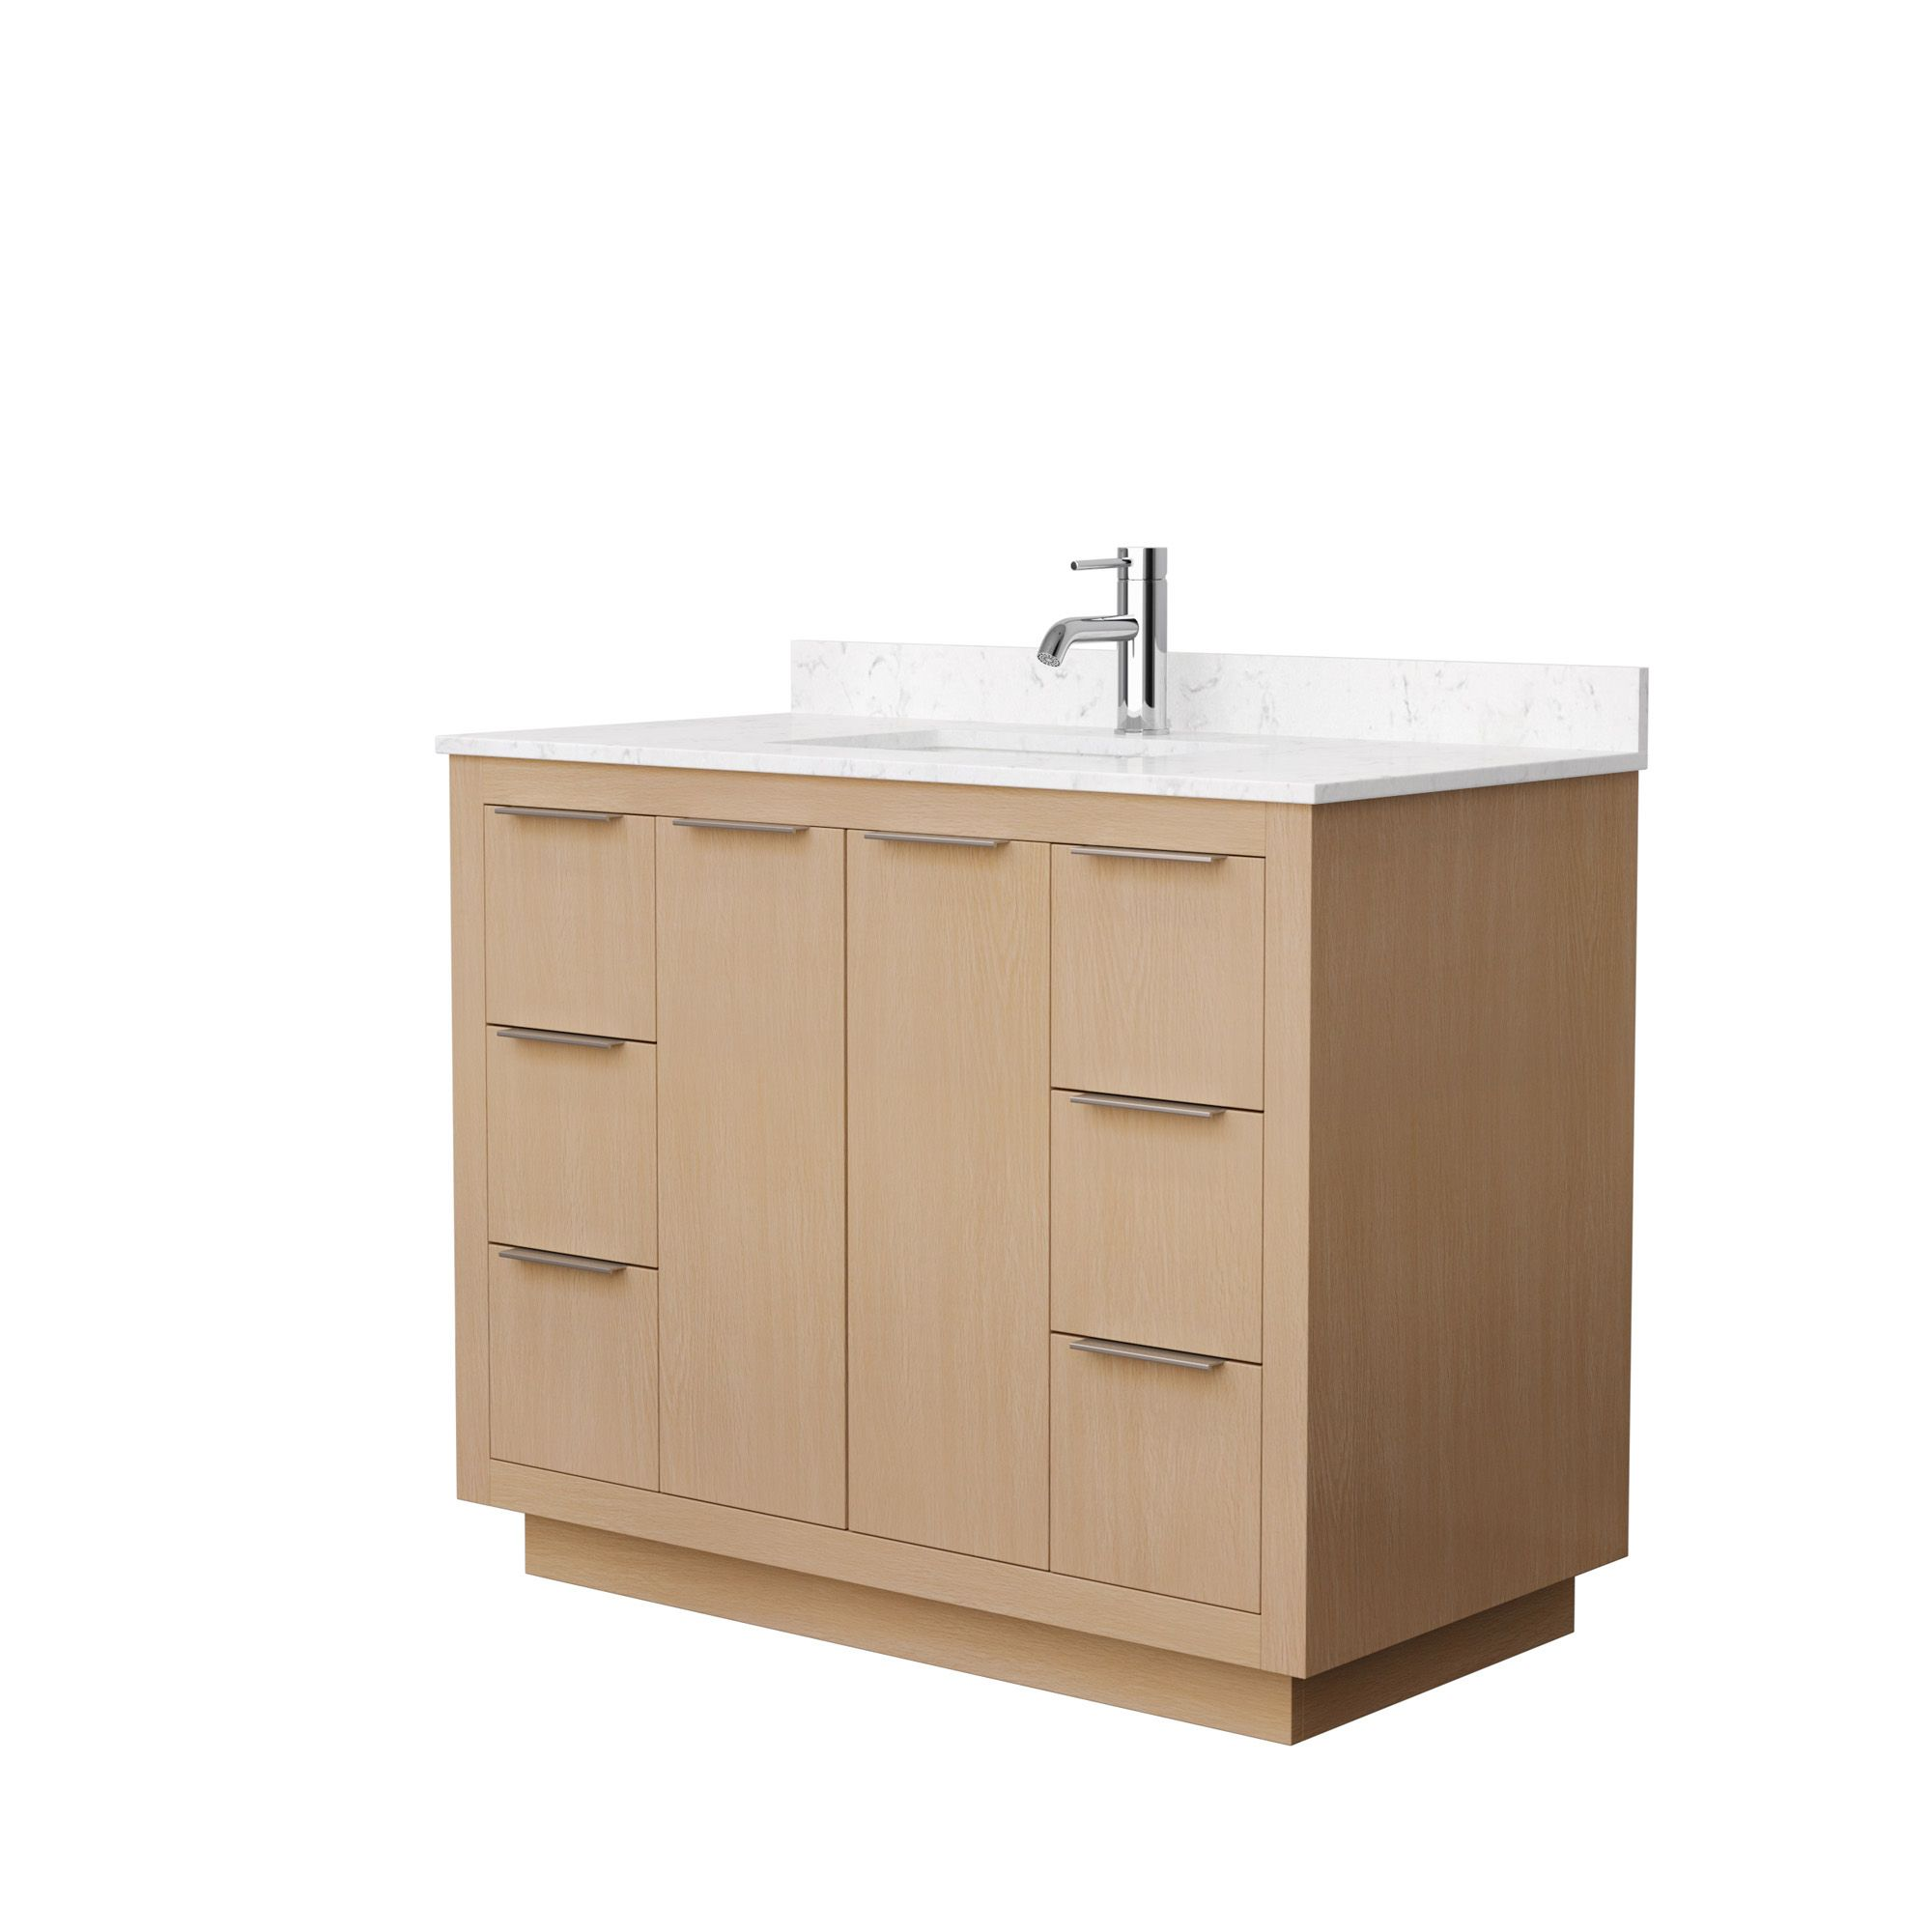 """42"""" Single Bathroom Vanity in Light Straw with Countertop and Hardware Options"""